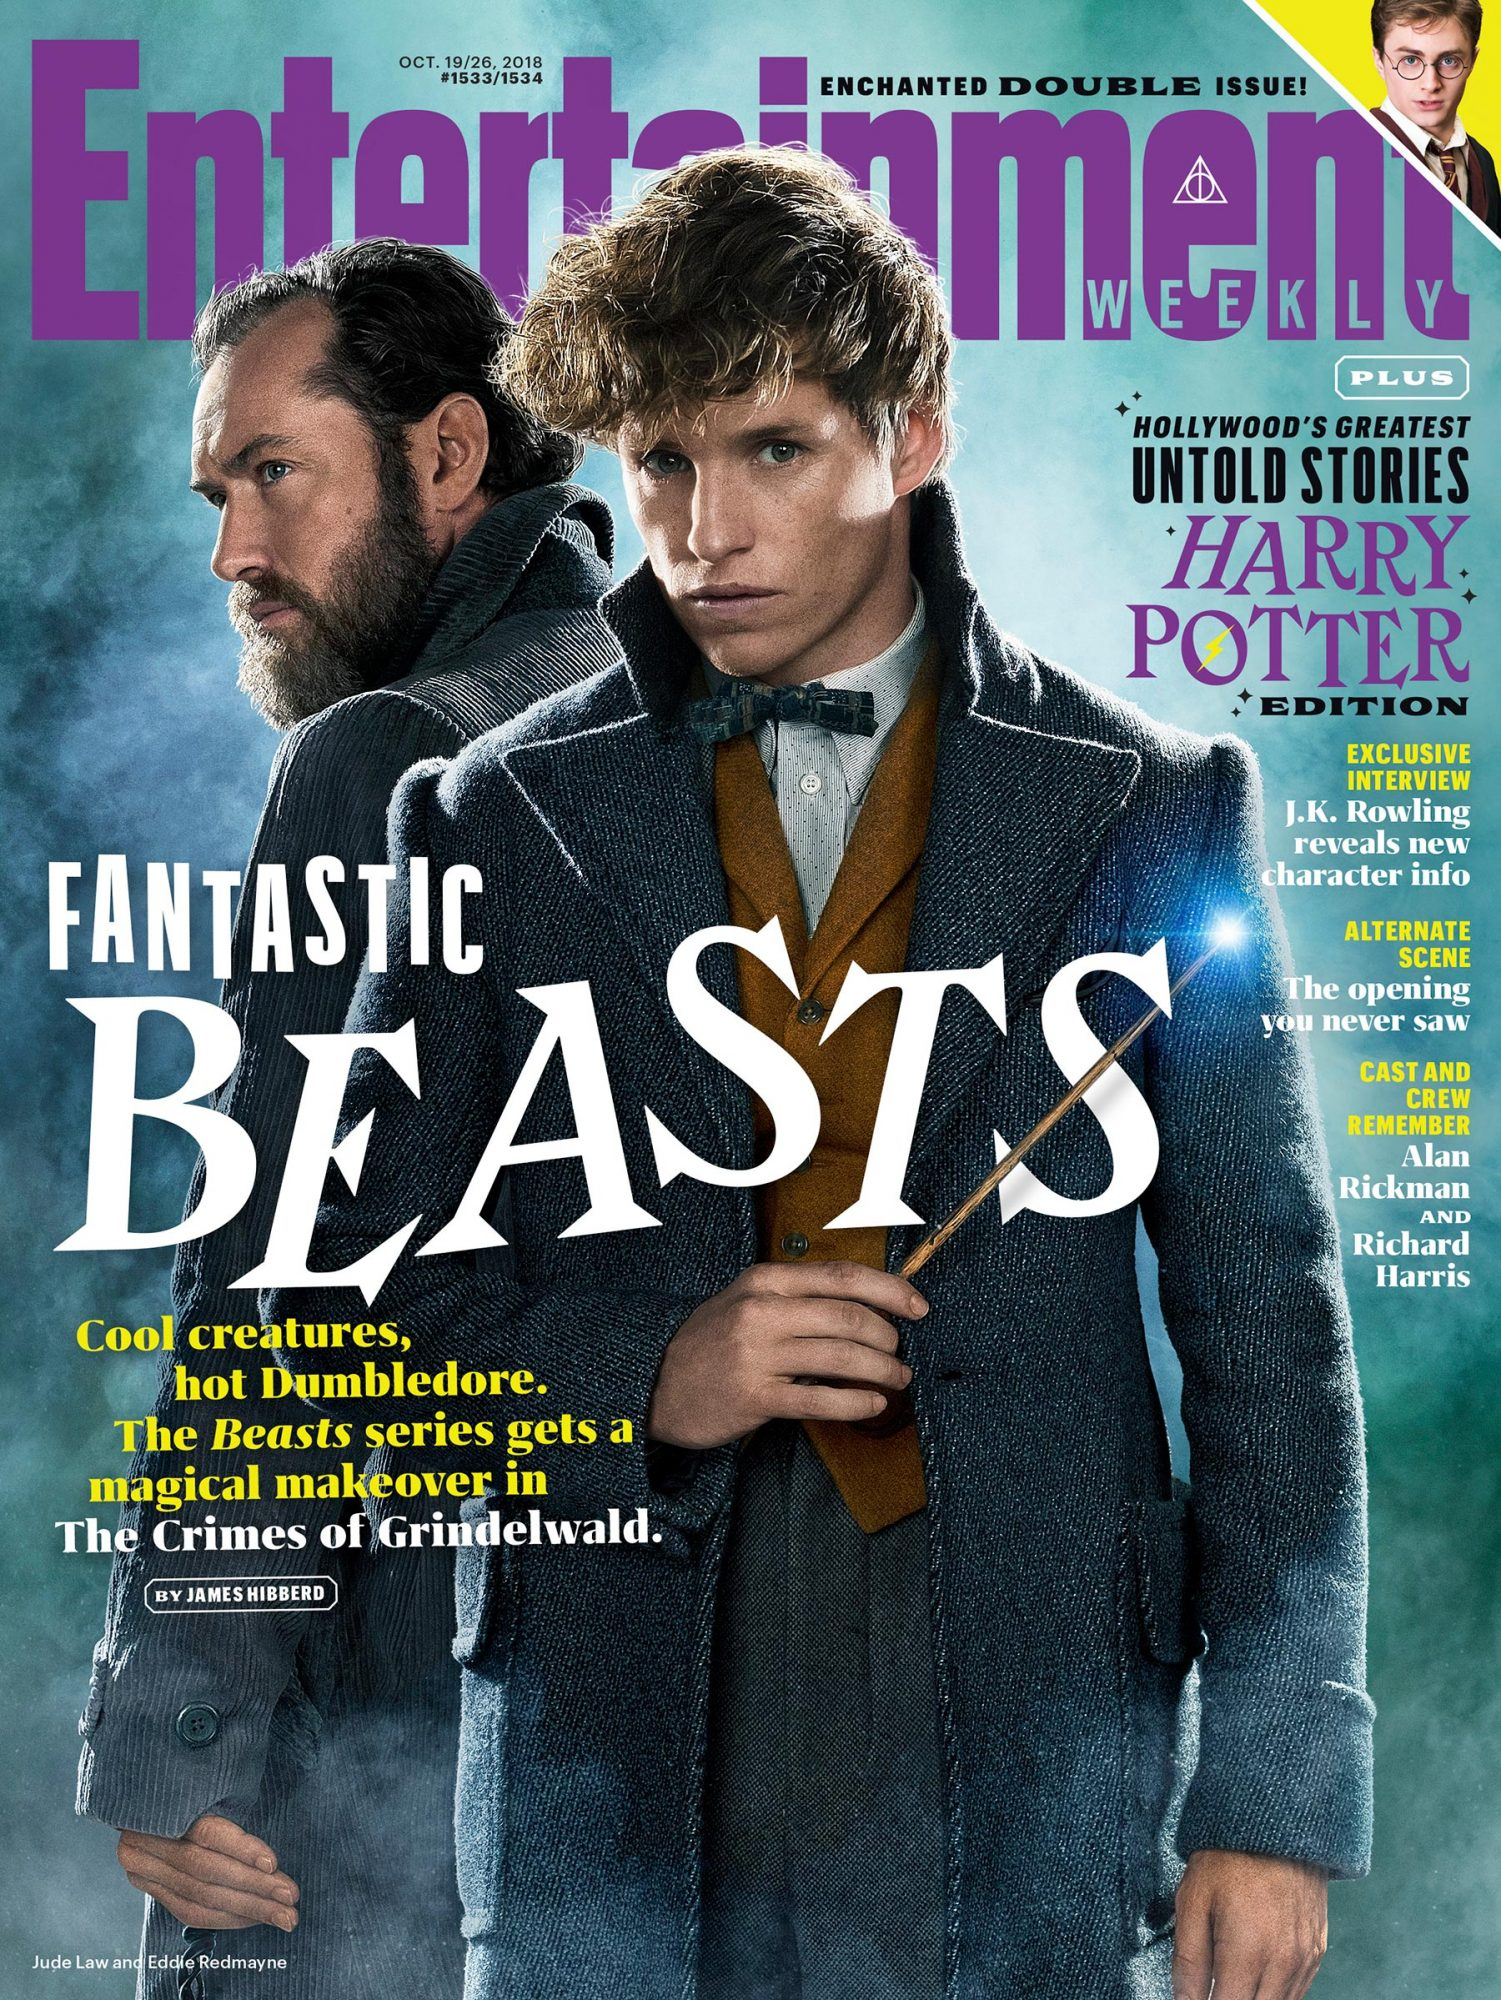 EW's Fantastic Beasts issue